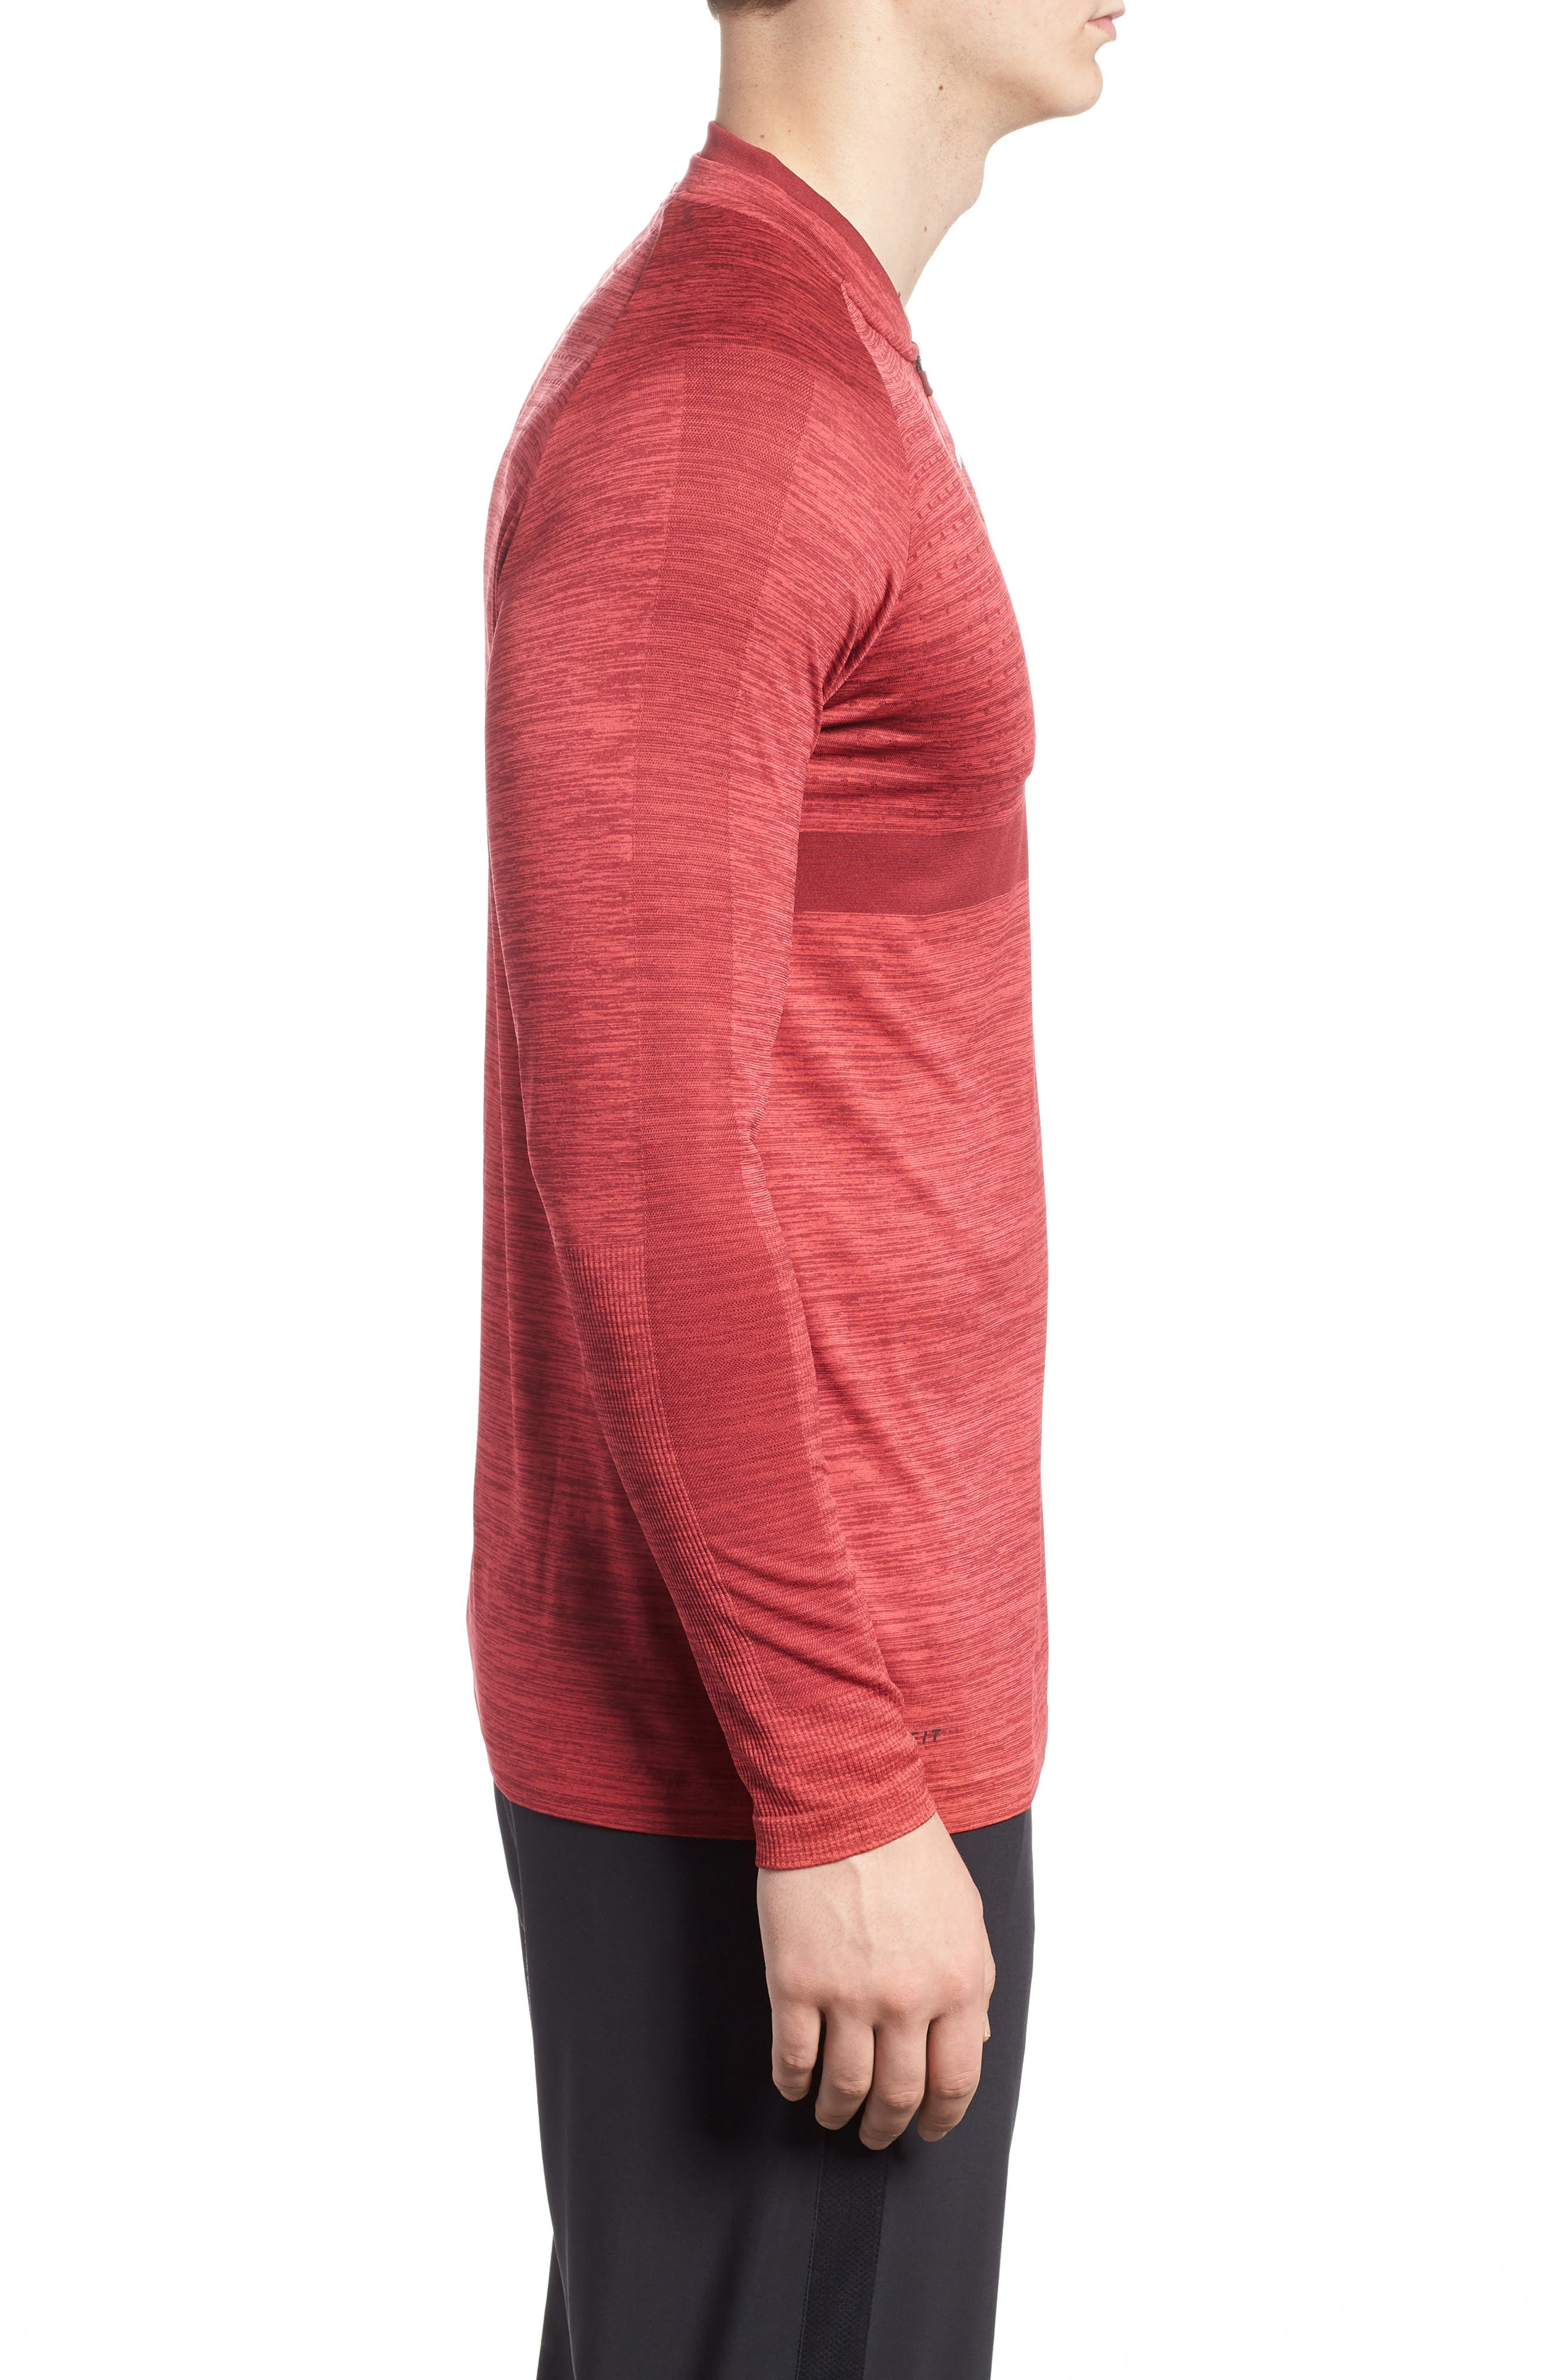 Dry Seamless Half Zip Golf Pullover,                             Alternate thumbnail 3, color,                             Tropical Pink/ Team Red/ Black